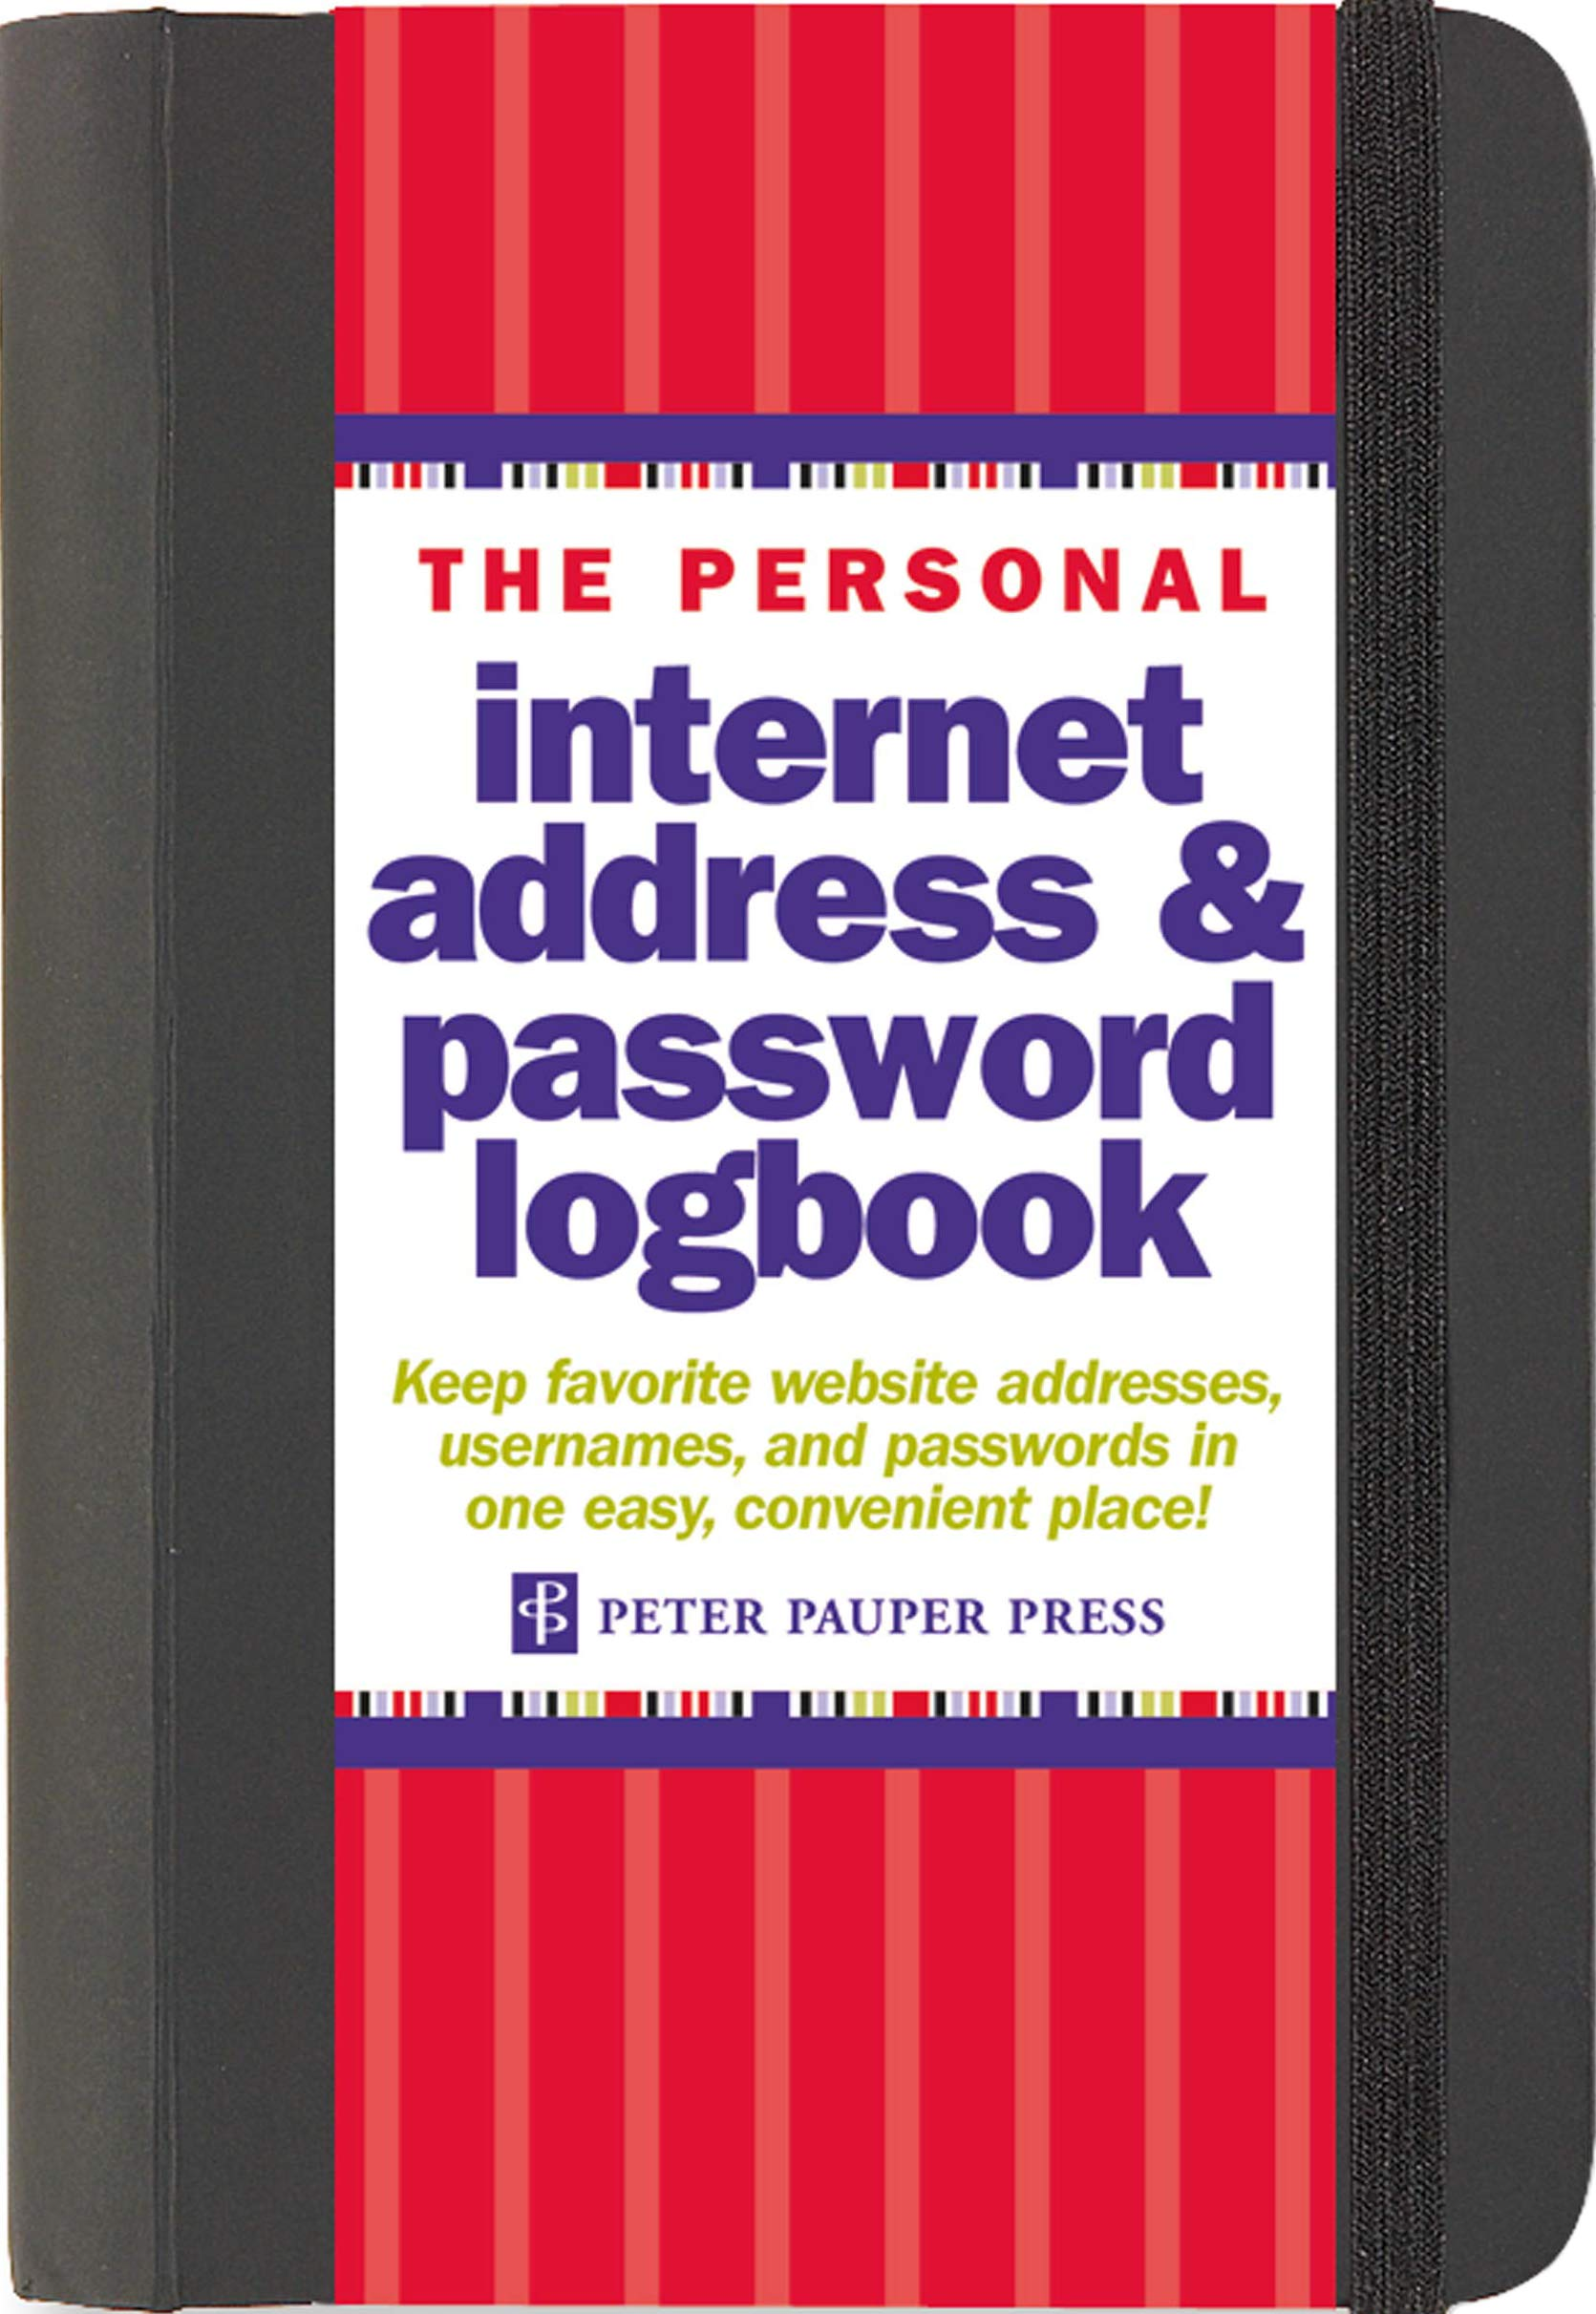 The Personal Internet Address & Password Logbook (detachable duvet band for safety)